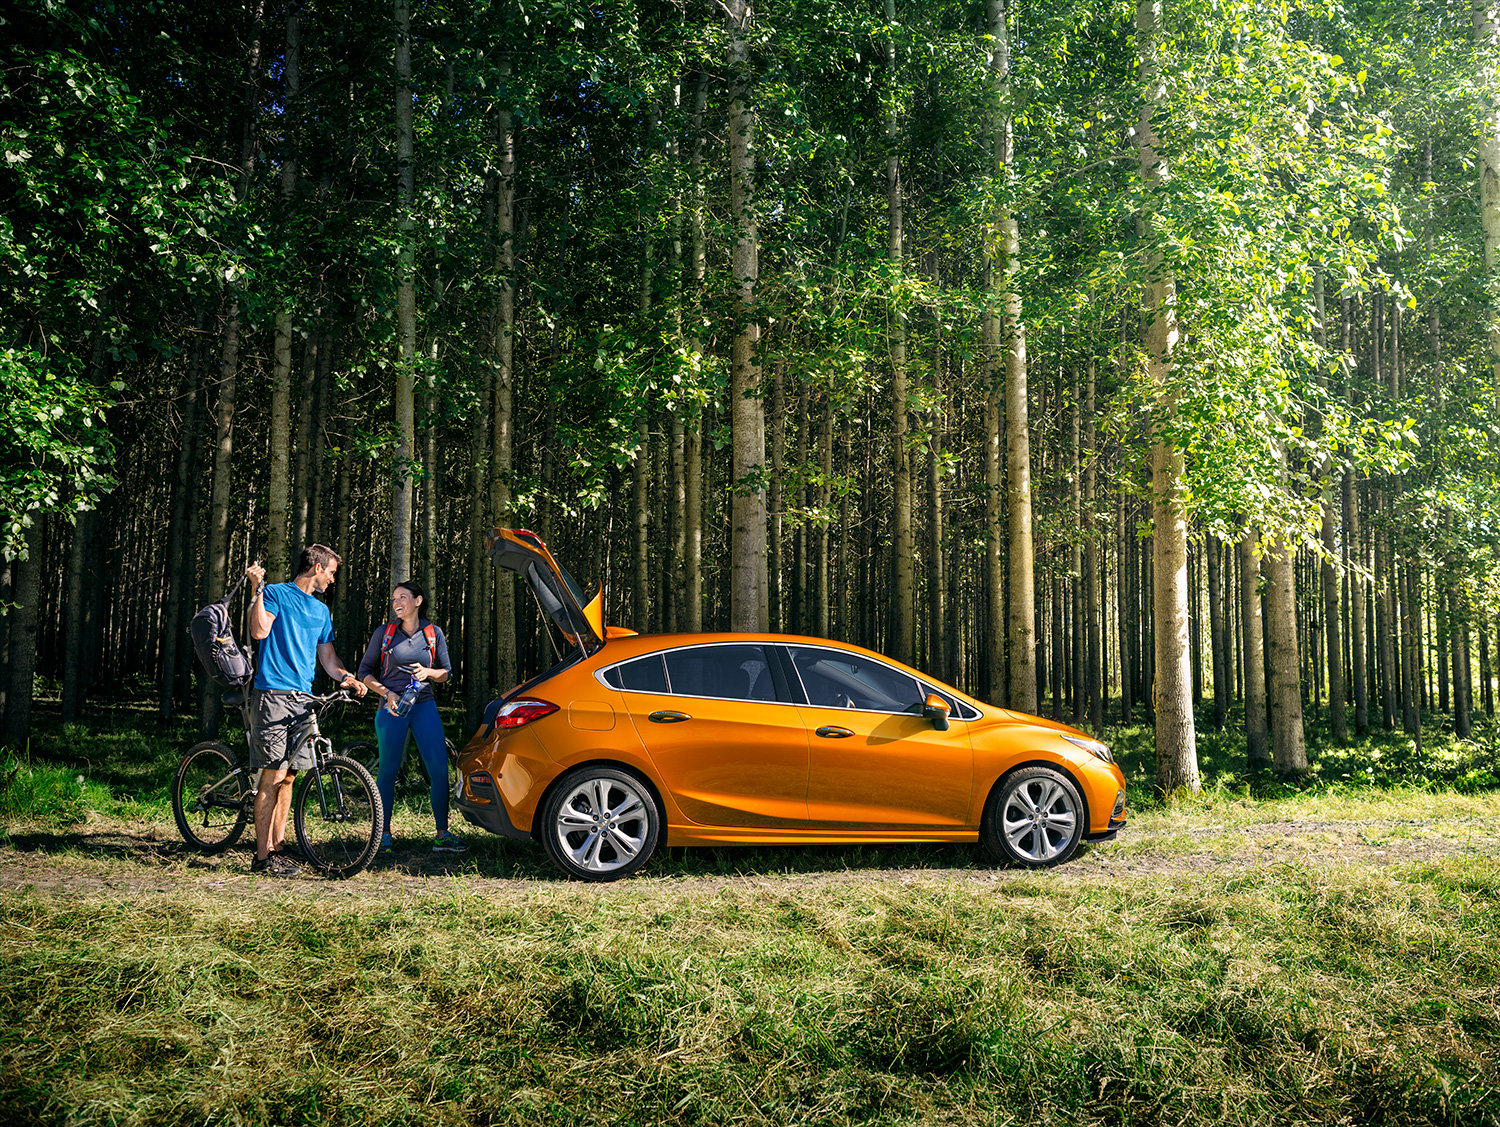 Valley Chevrolet - Chevy Cruze Diesel for Road Trips - Wilderness